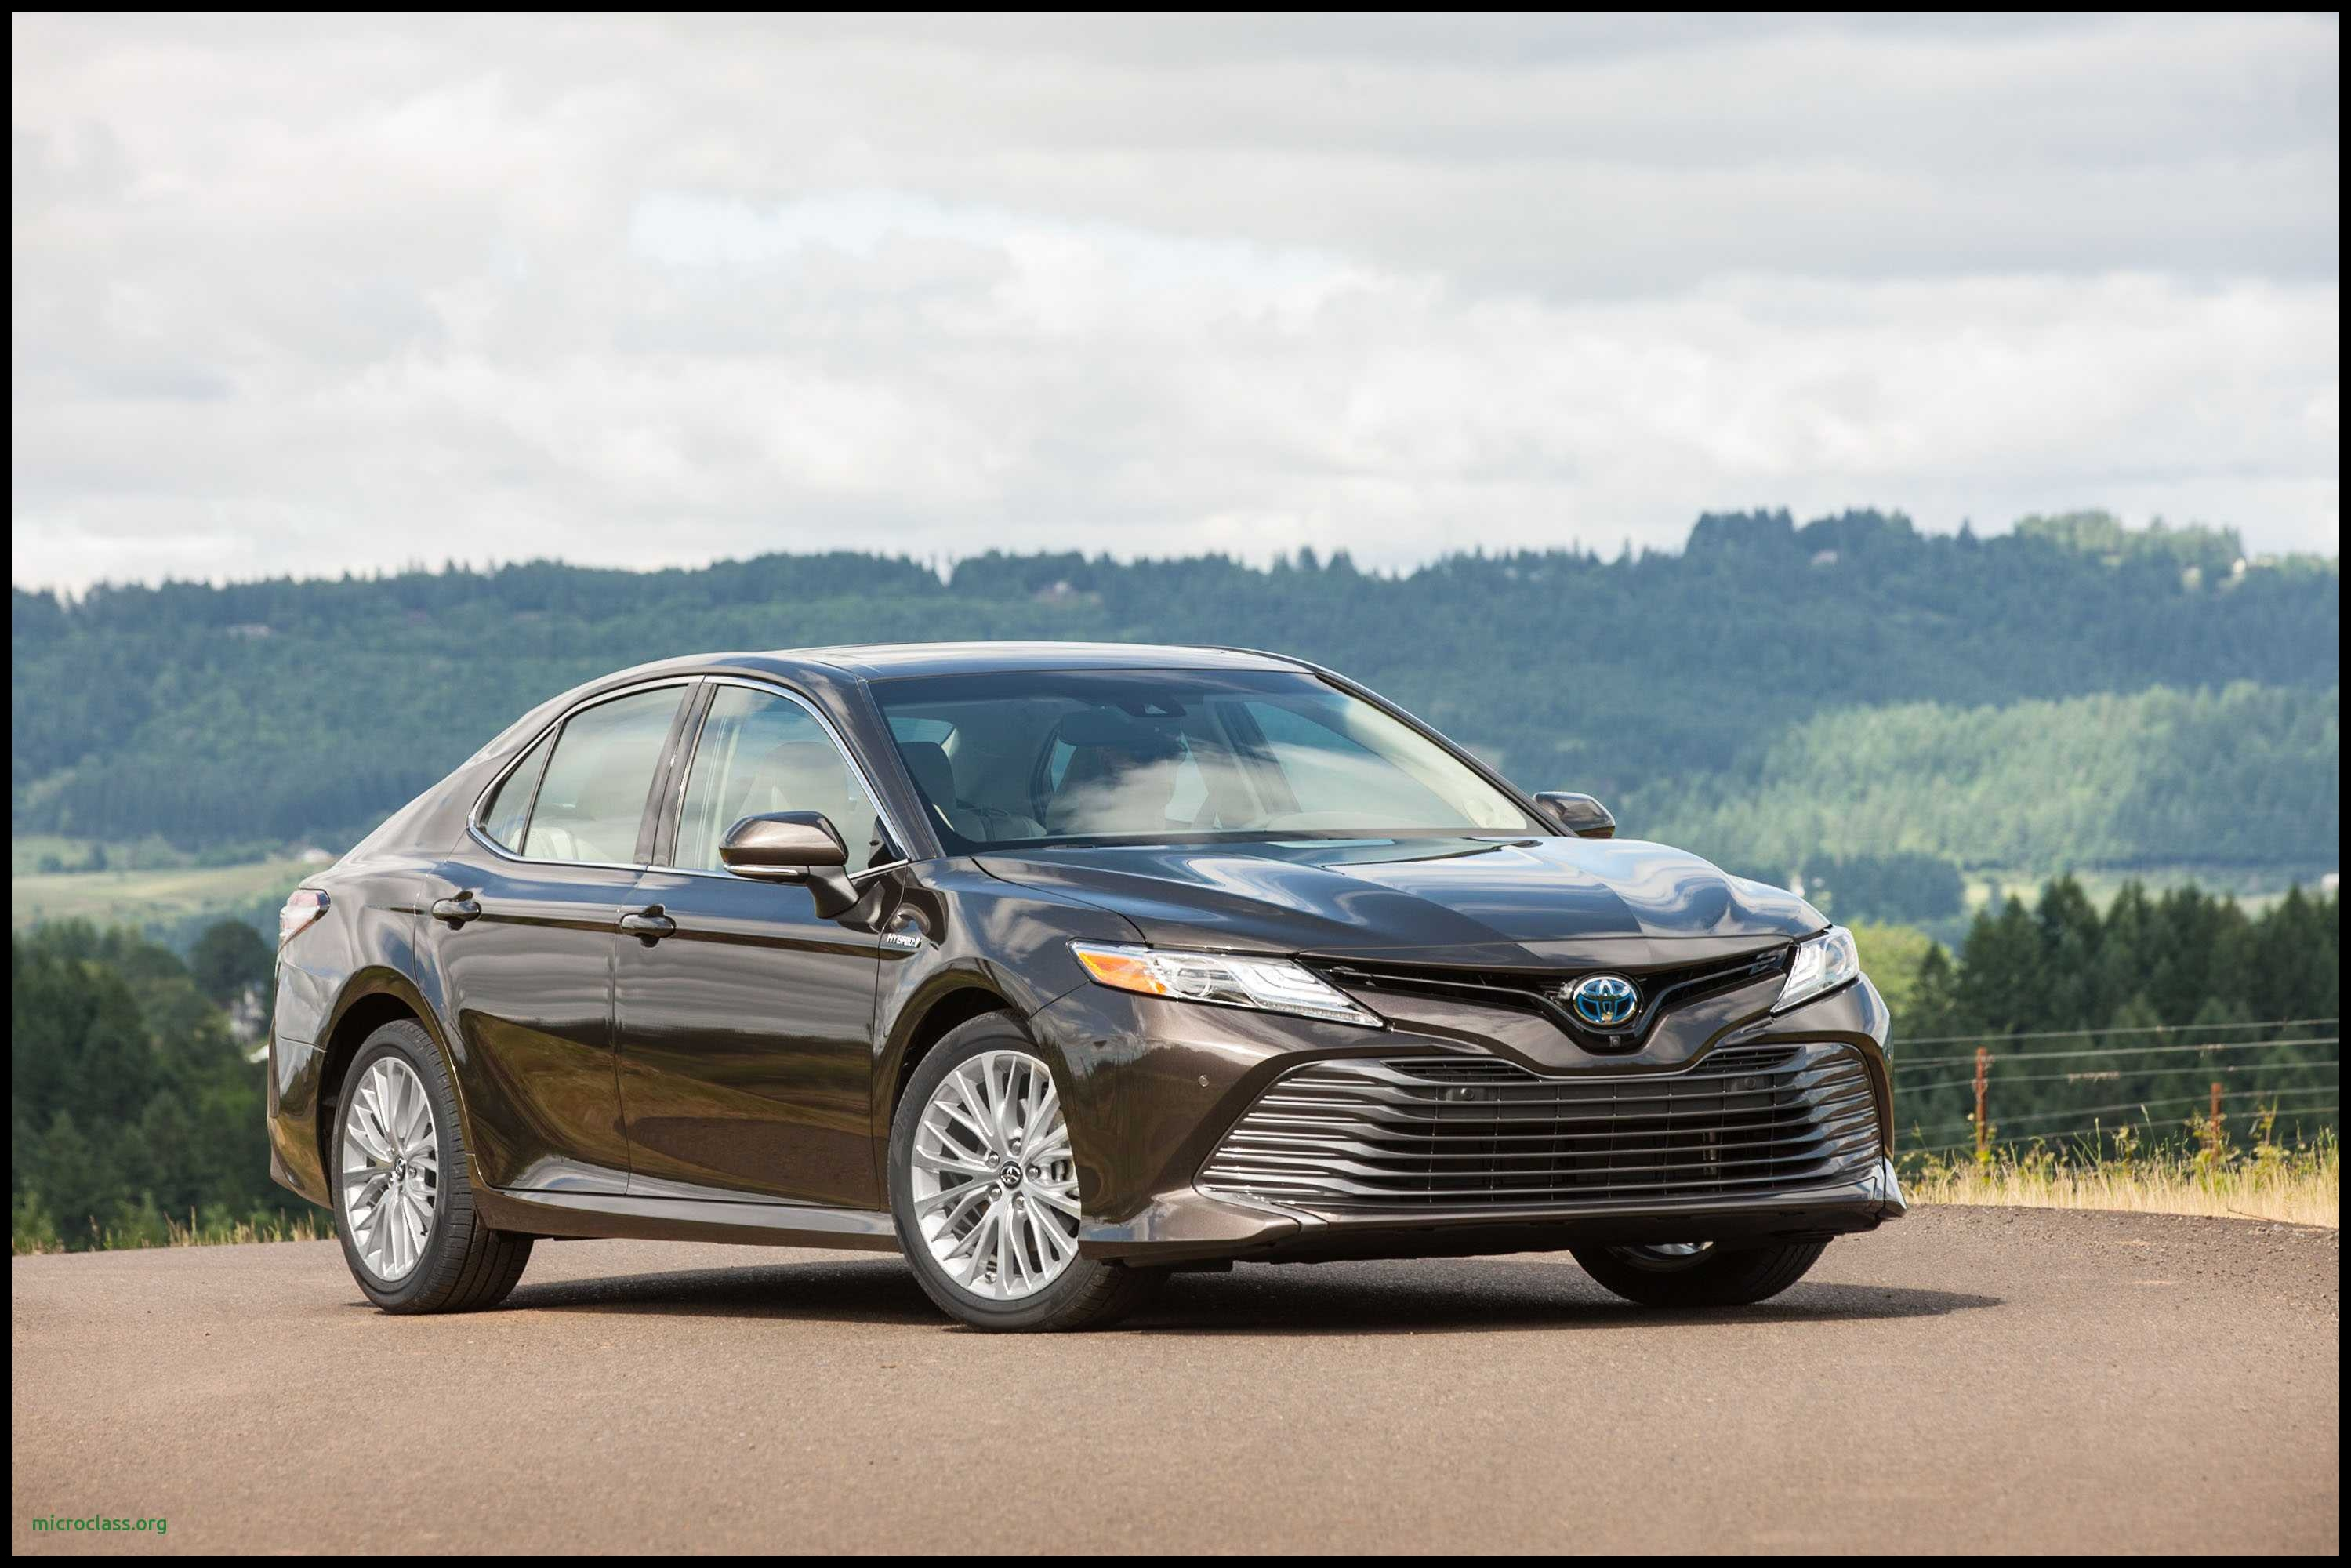 1994 toyota Camry Review Ratings Specs Prices and S the New toyota Camry Hybrid 2019